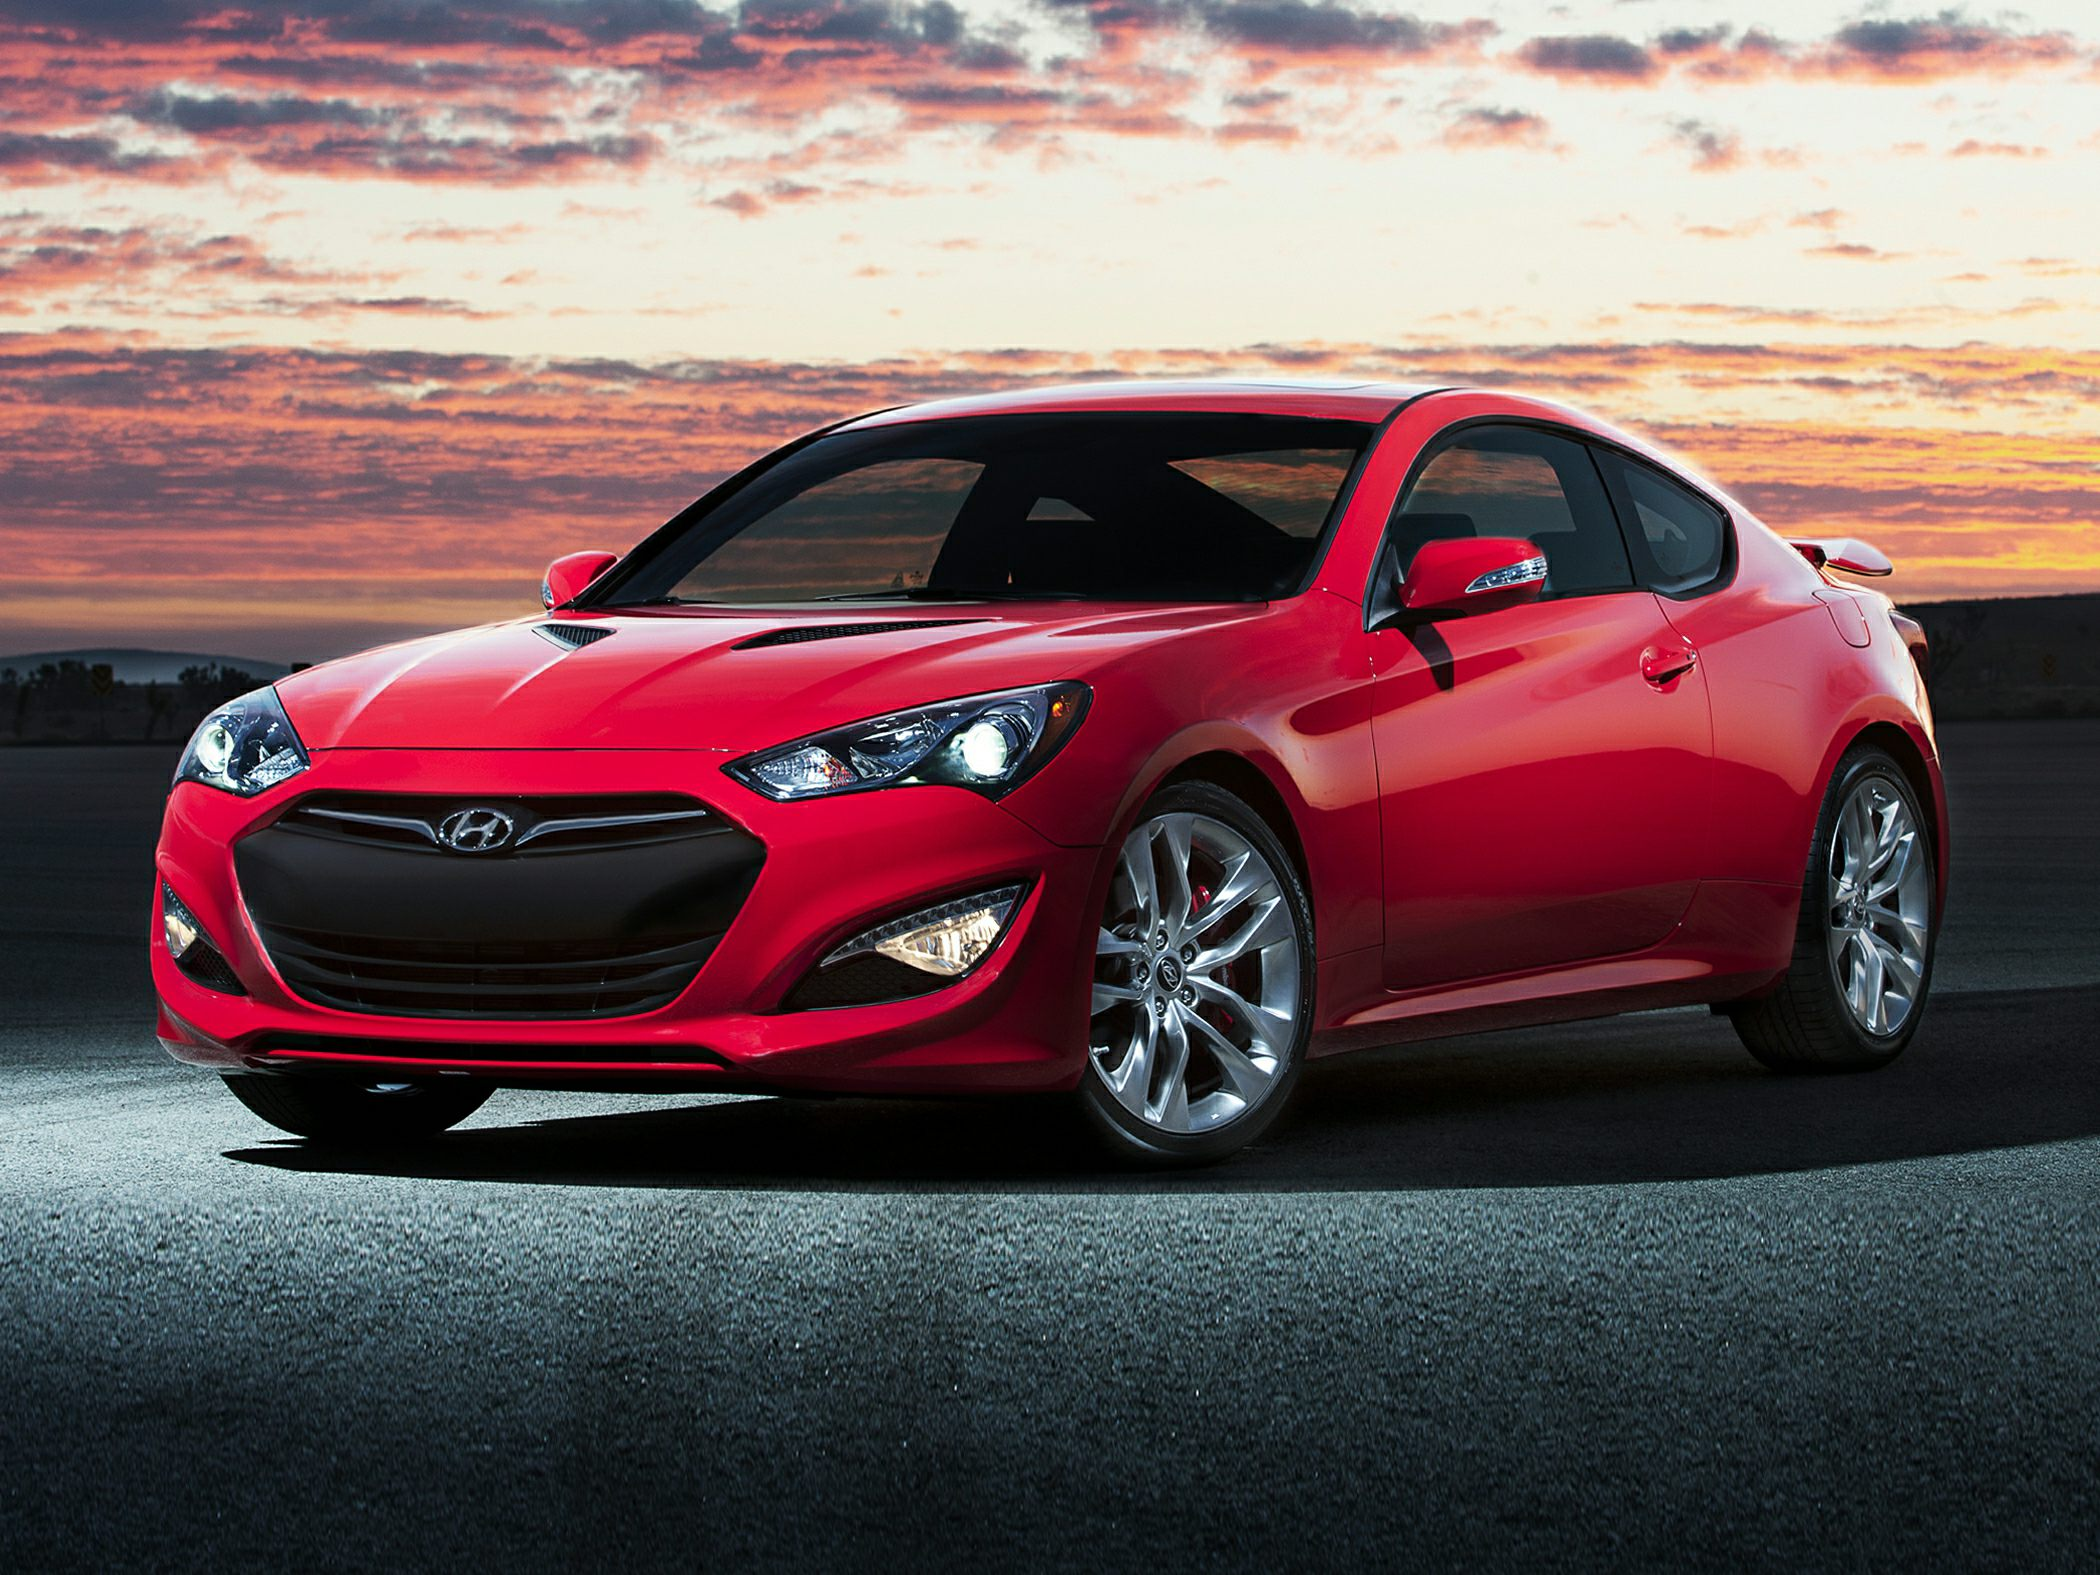 coupe aa specs international overview prices hyundai genesis price intl